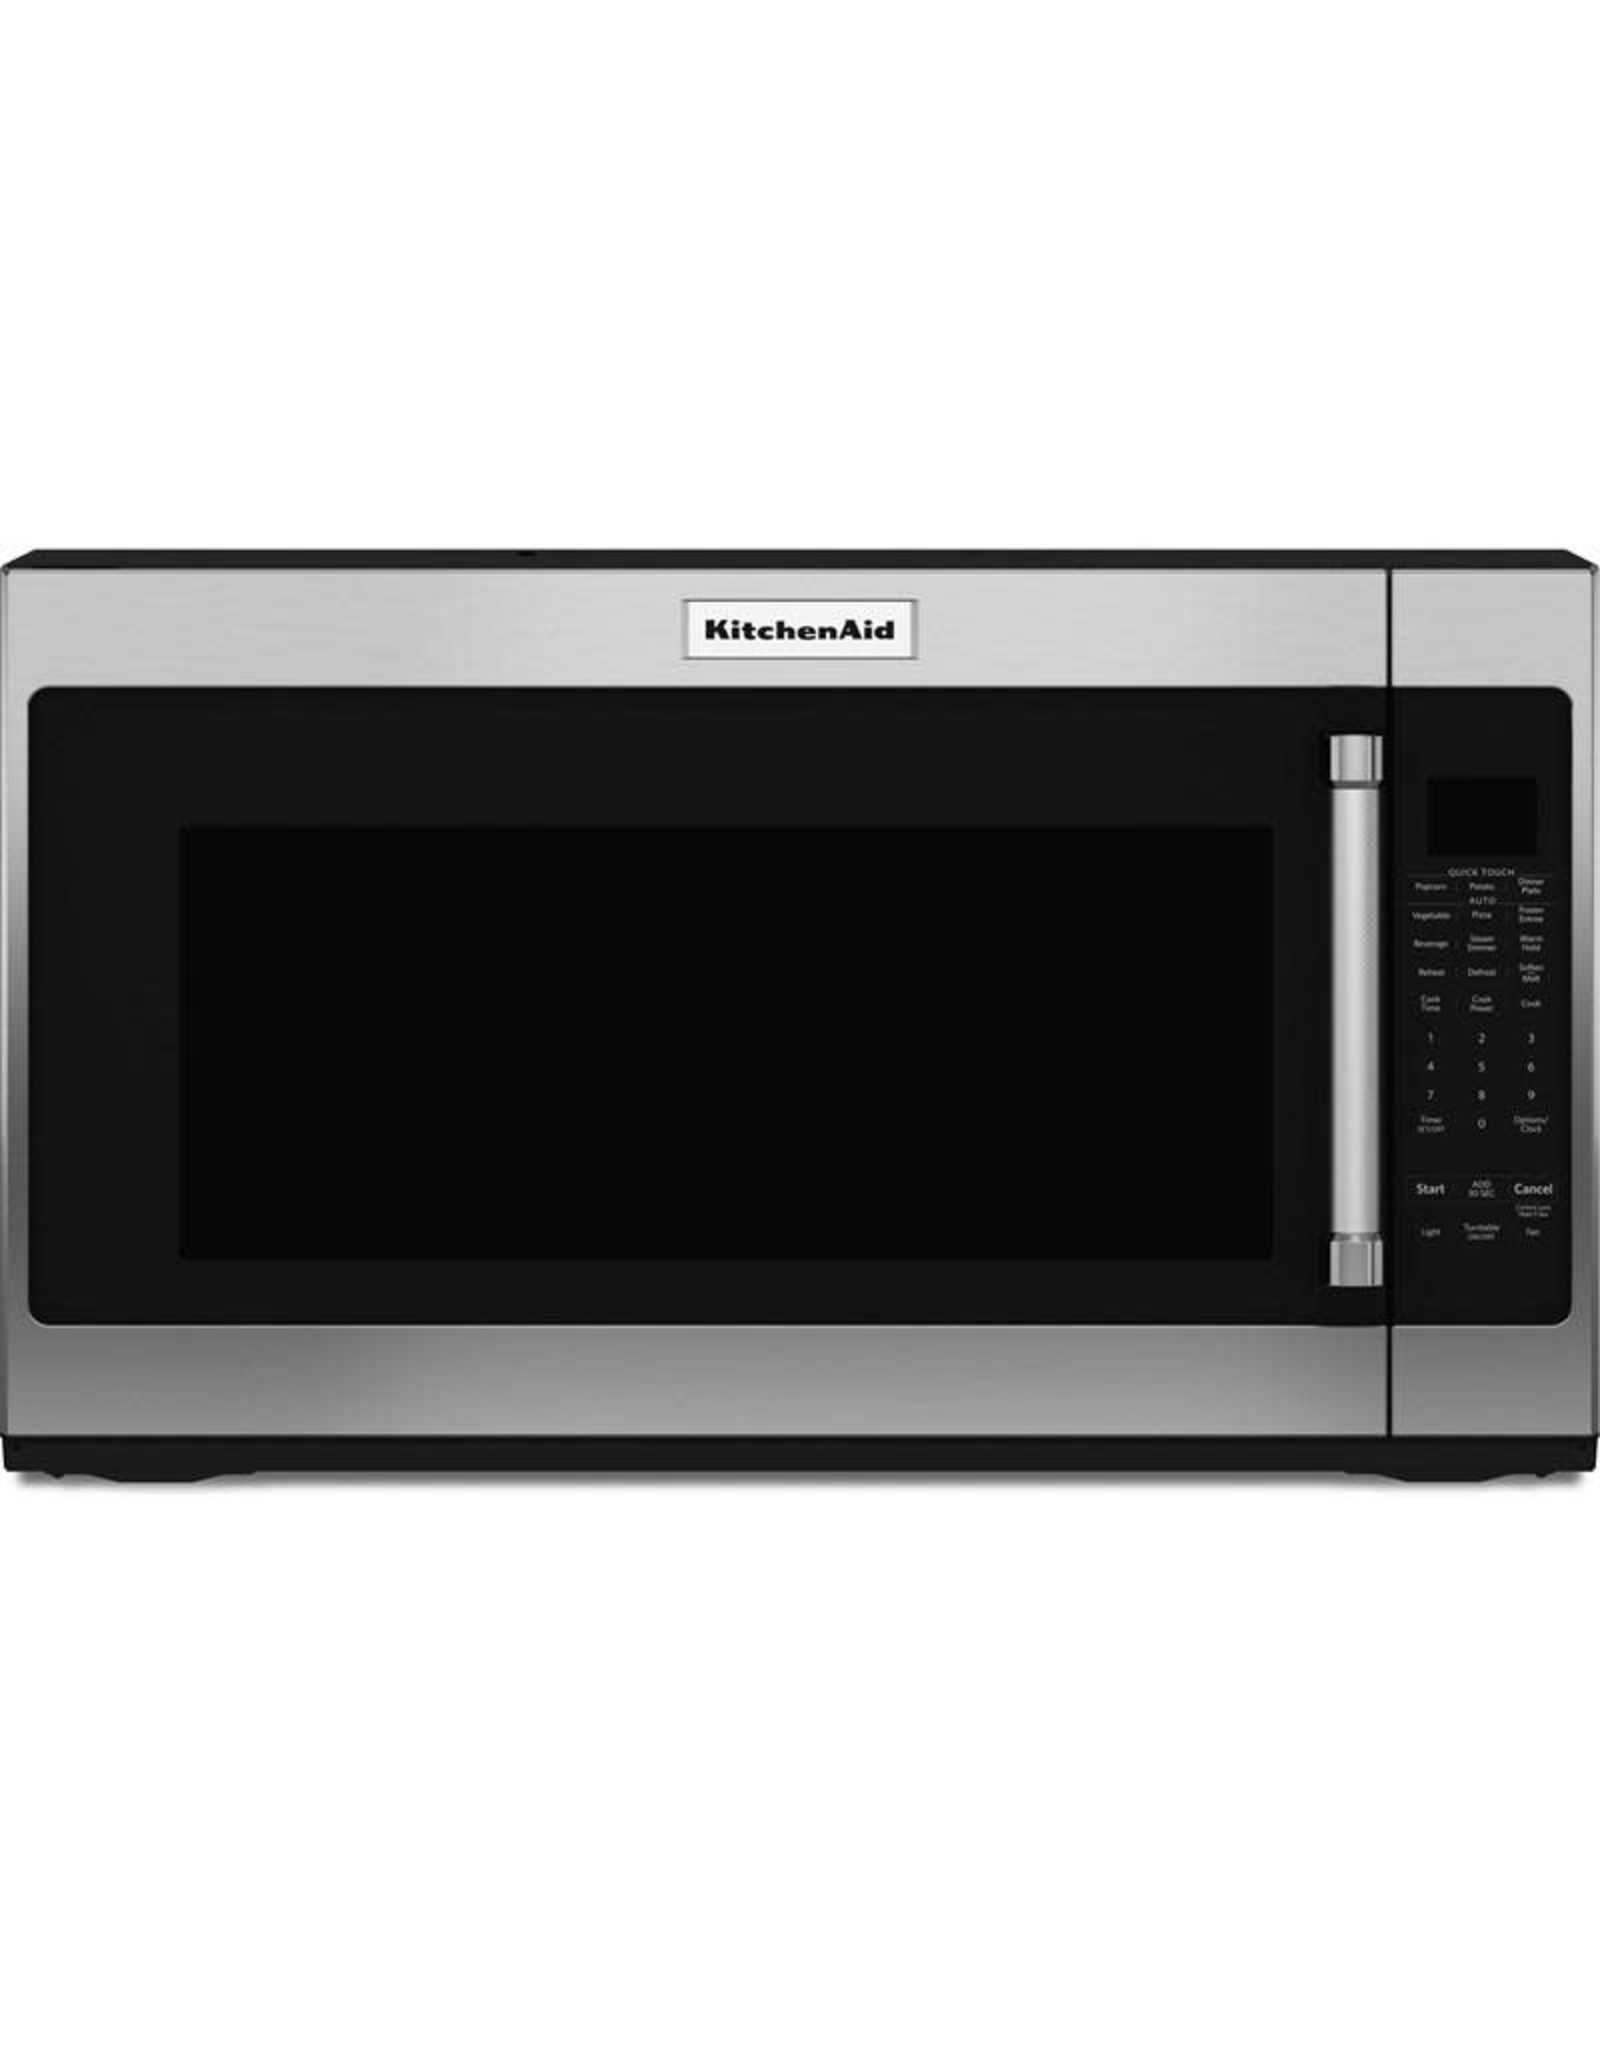 KMHS120ESS 2.0 cu. ft. Over the Range Microwave in Stainless Steel with Sensor Cooking